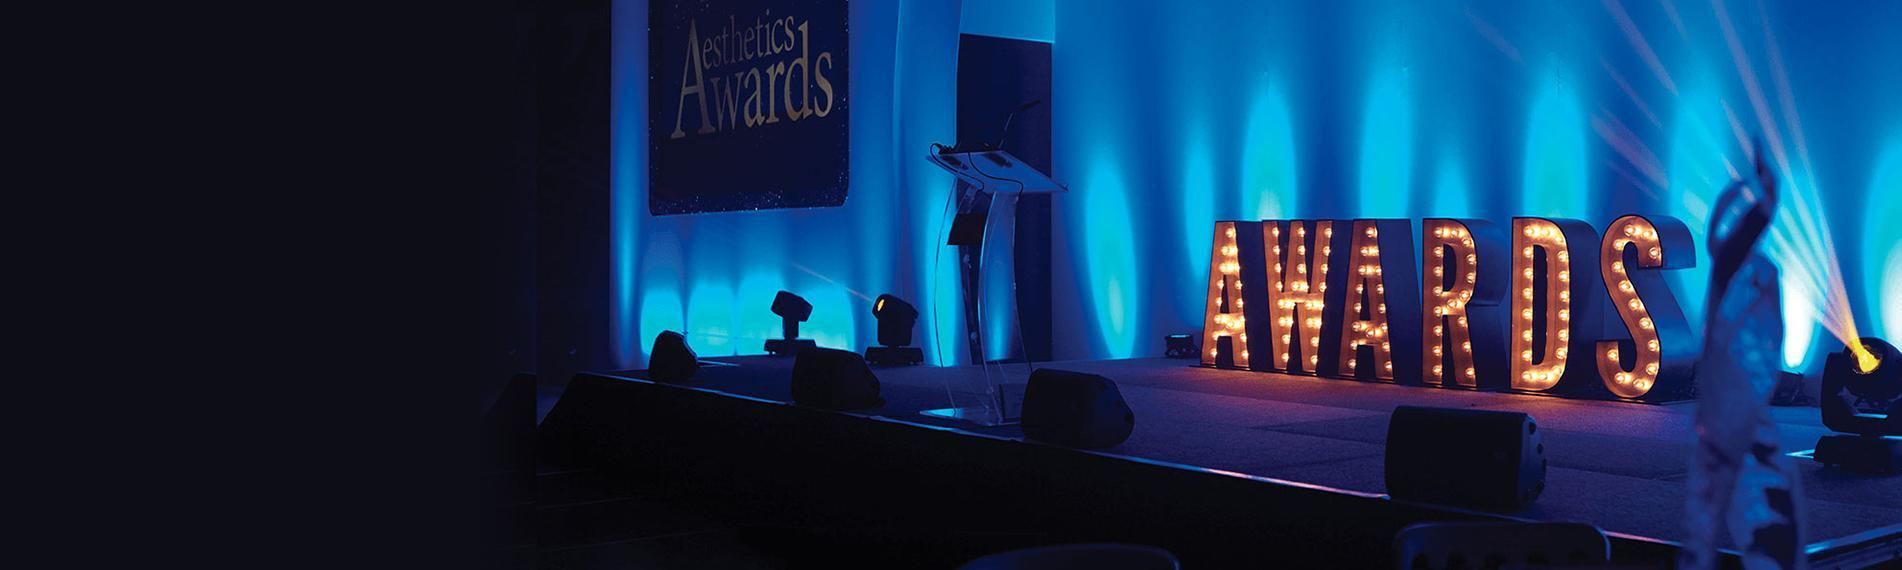 sw-aesthetics-awards